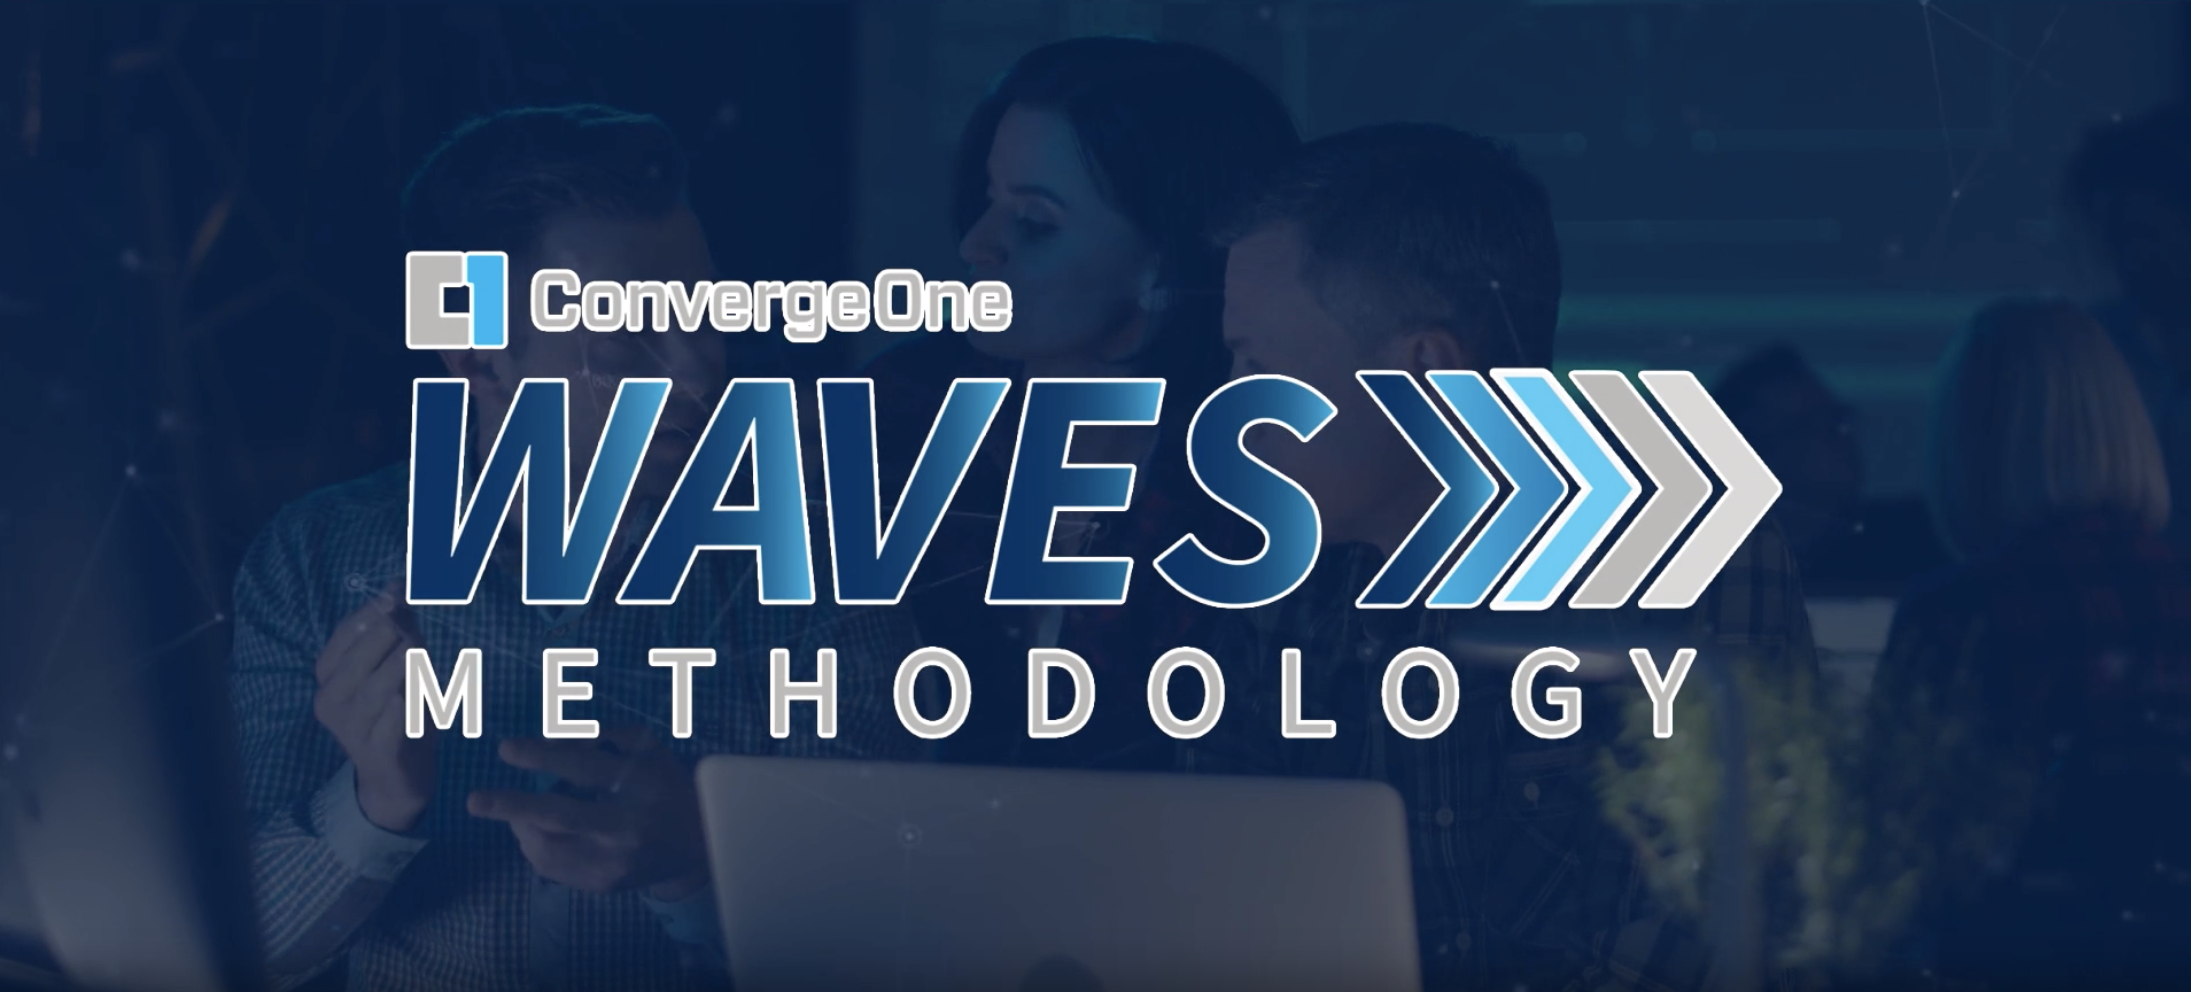 ConvergeOne_WAVES_v5-1